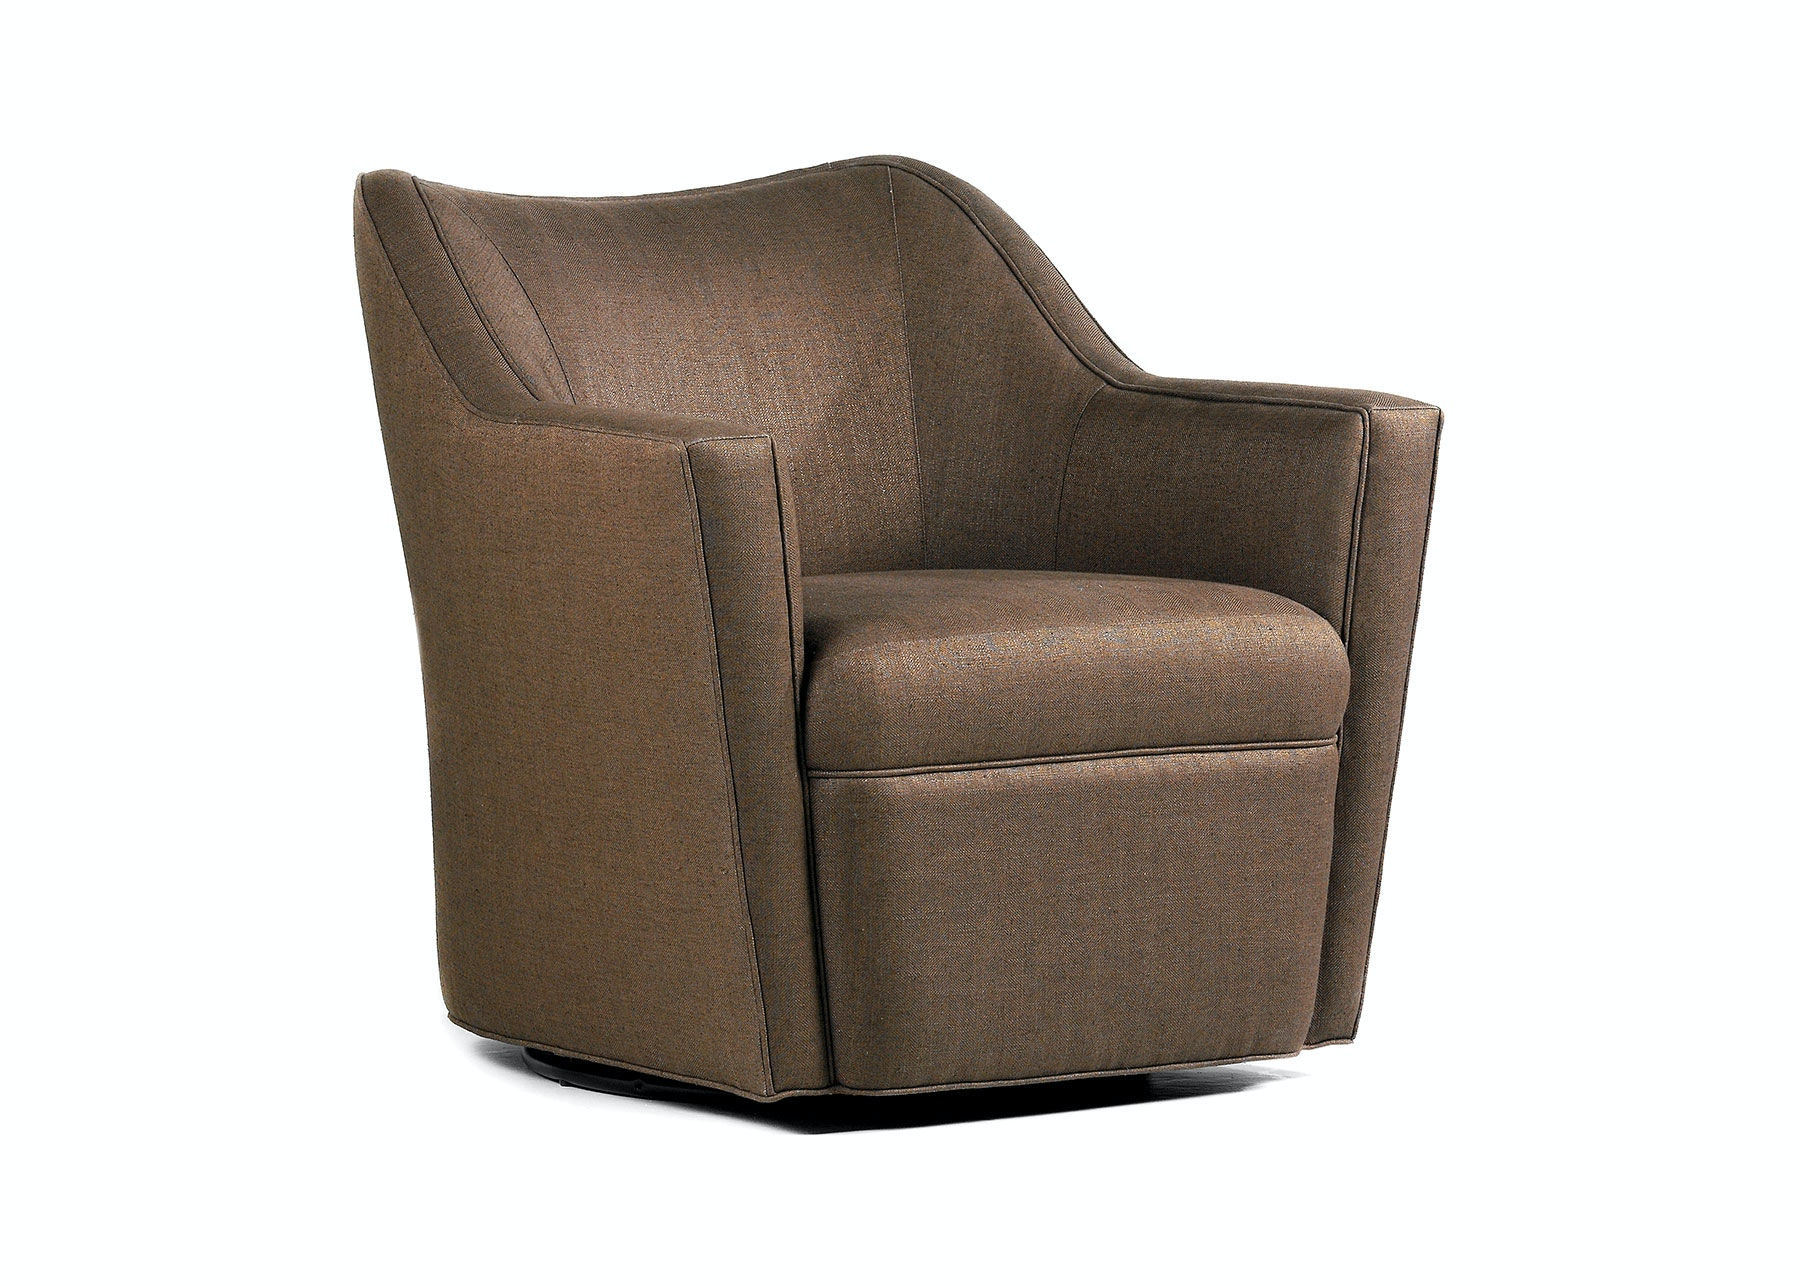 ab swivel chair leather recliner chairs brisbane jessica charles living room folio 168 s